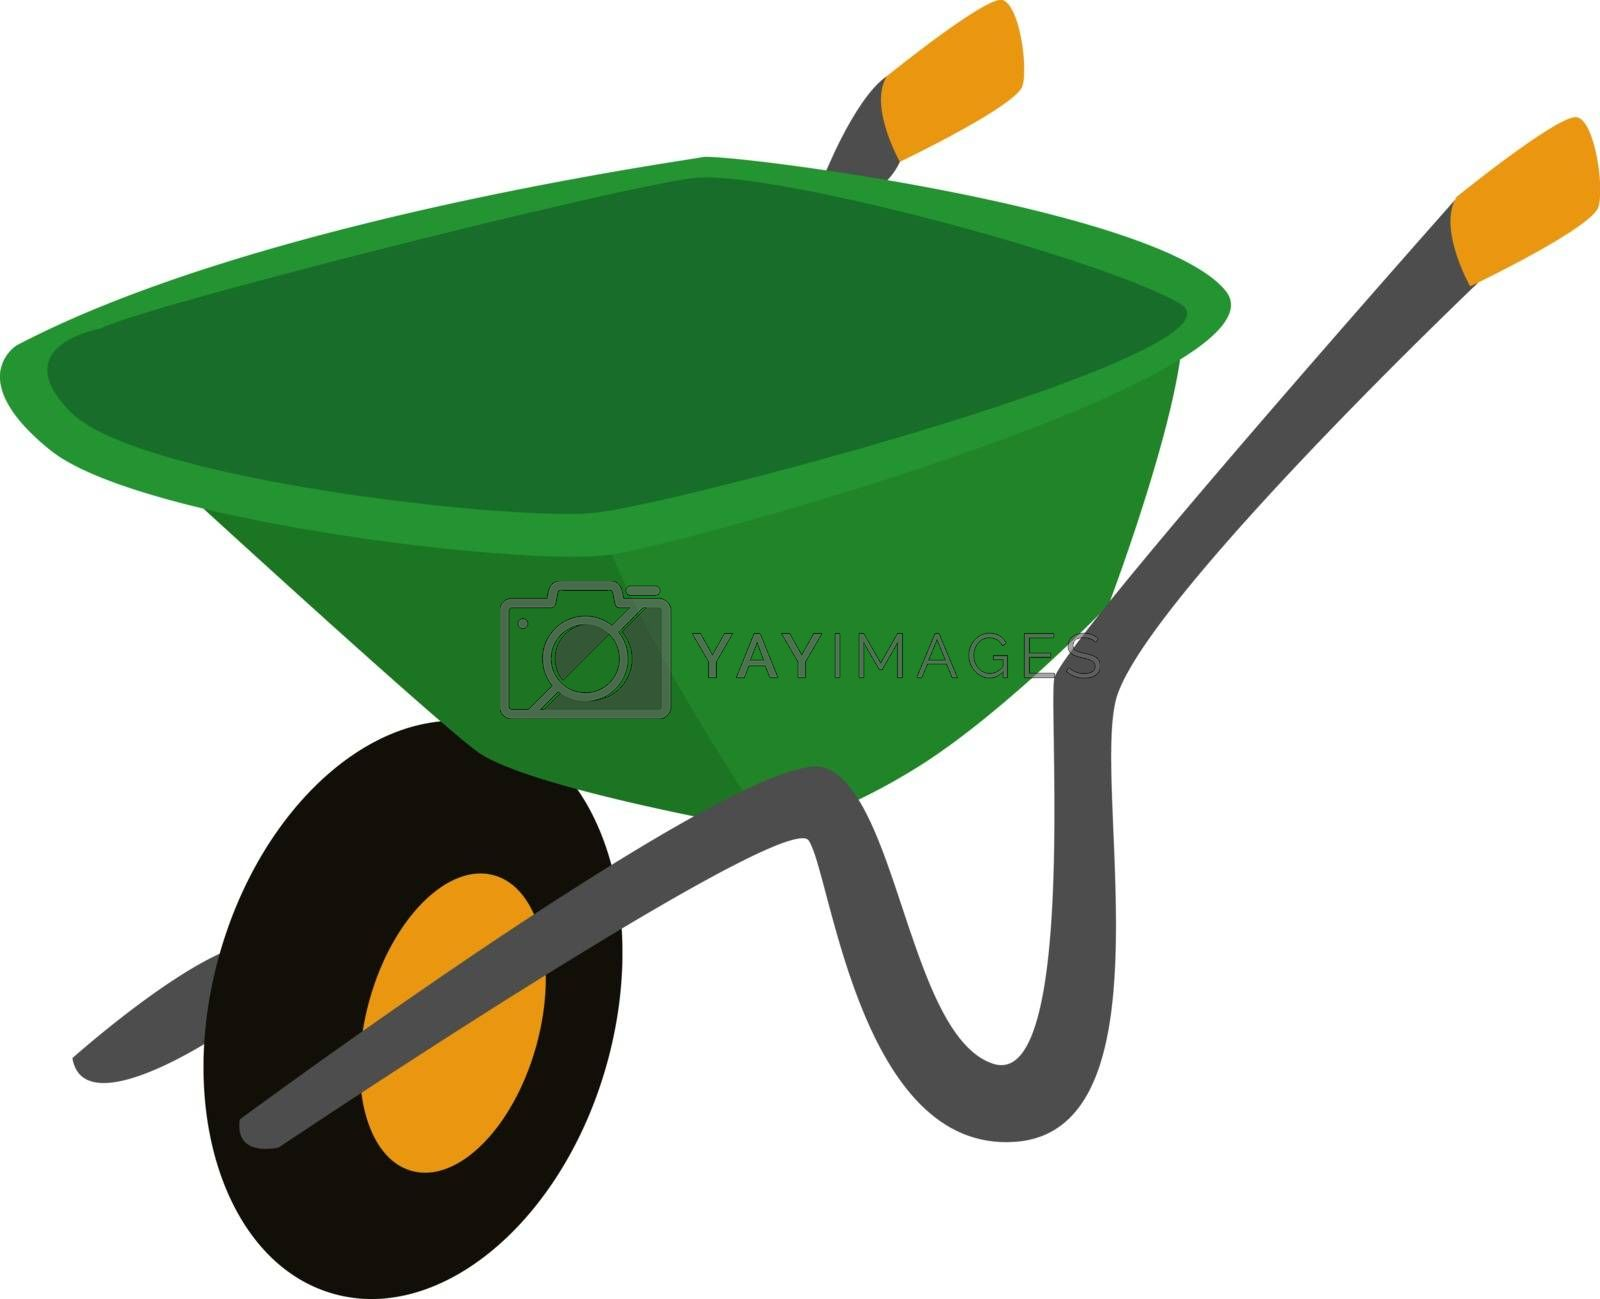 Construction trolley, illustration, vector on white background.